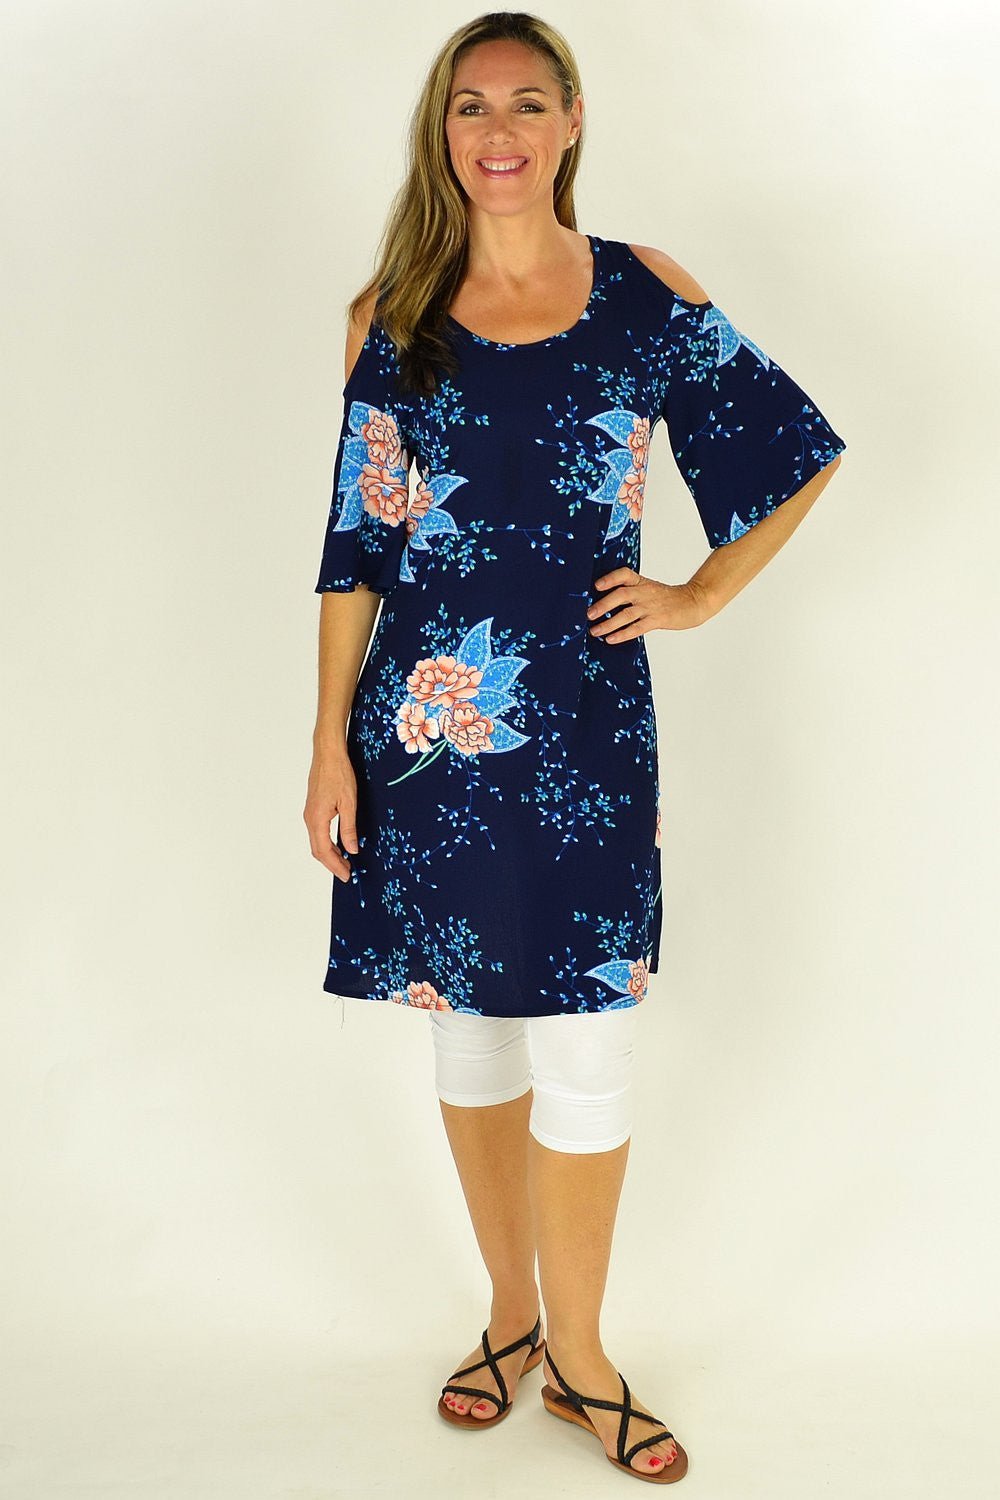 Navy Flower Tree Tunic - at I Love Tunics @ www.ilovetunics.com = Number One! Tunics Destination